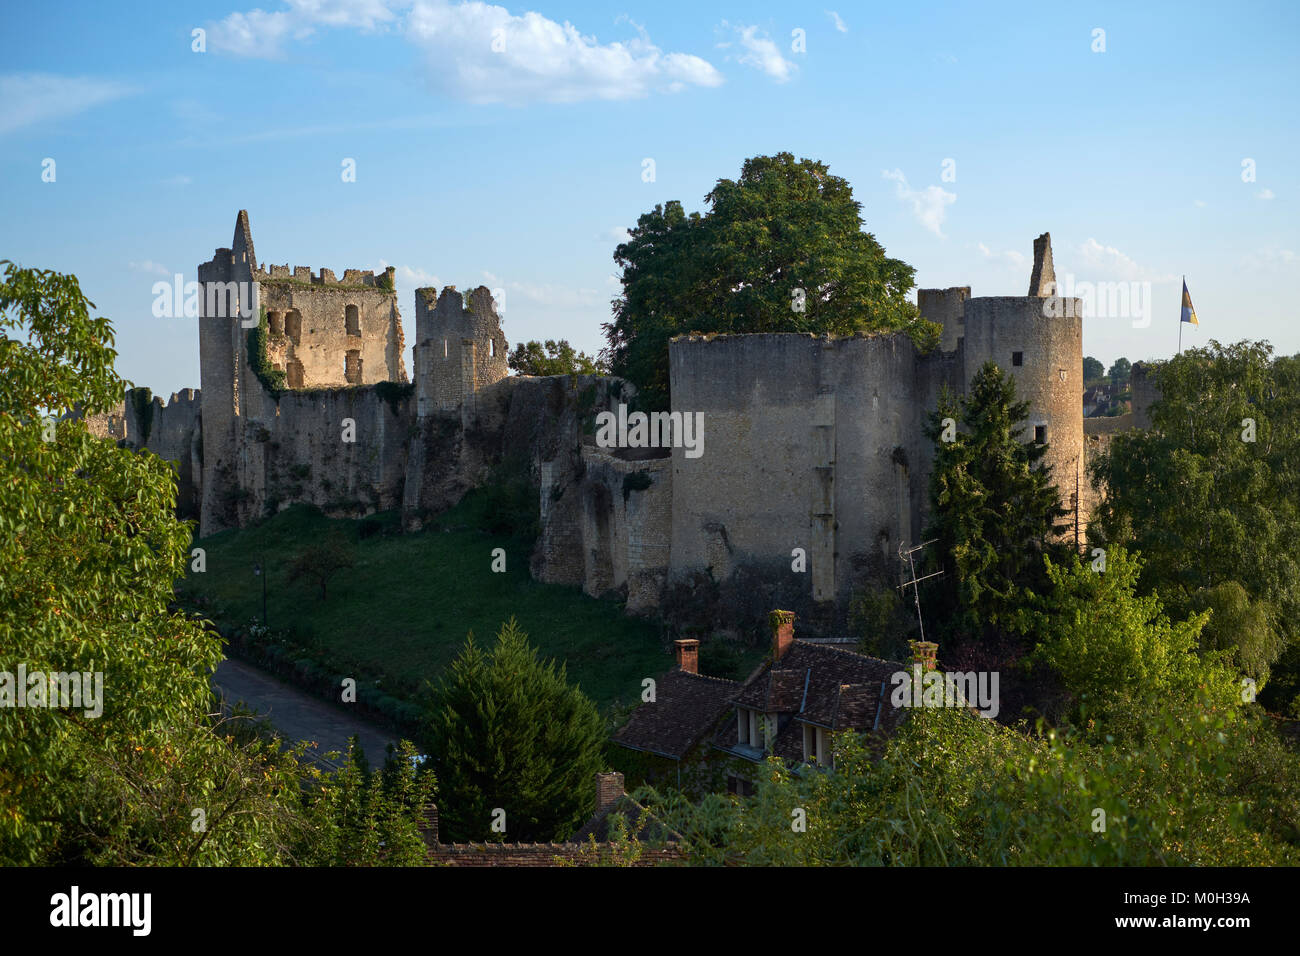 The castle ruins of Angles sur l'Anglin in Vienne France - One of the most beautiful villages in France. - Stock Image